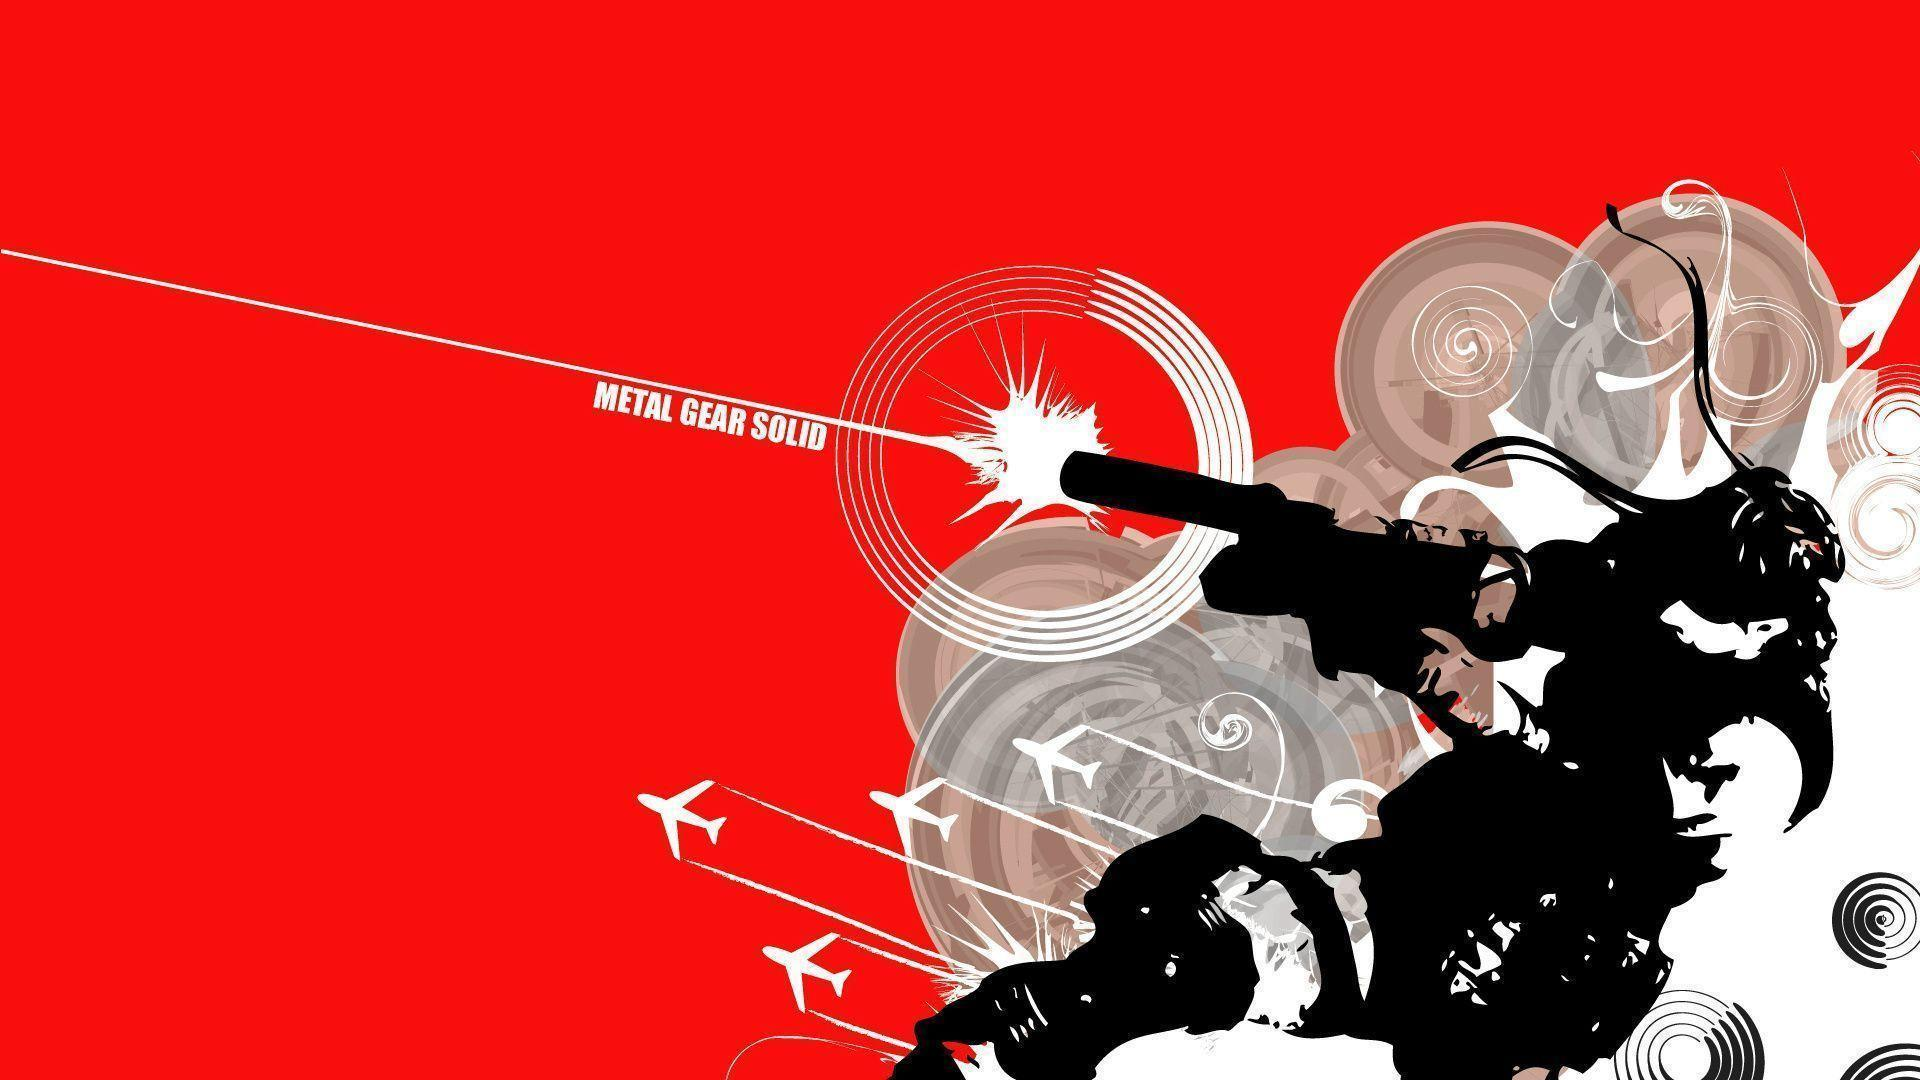 metal gear hd wallpapers - photo #16